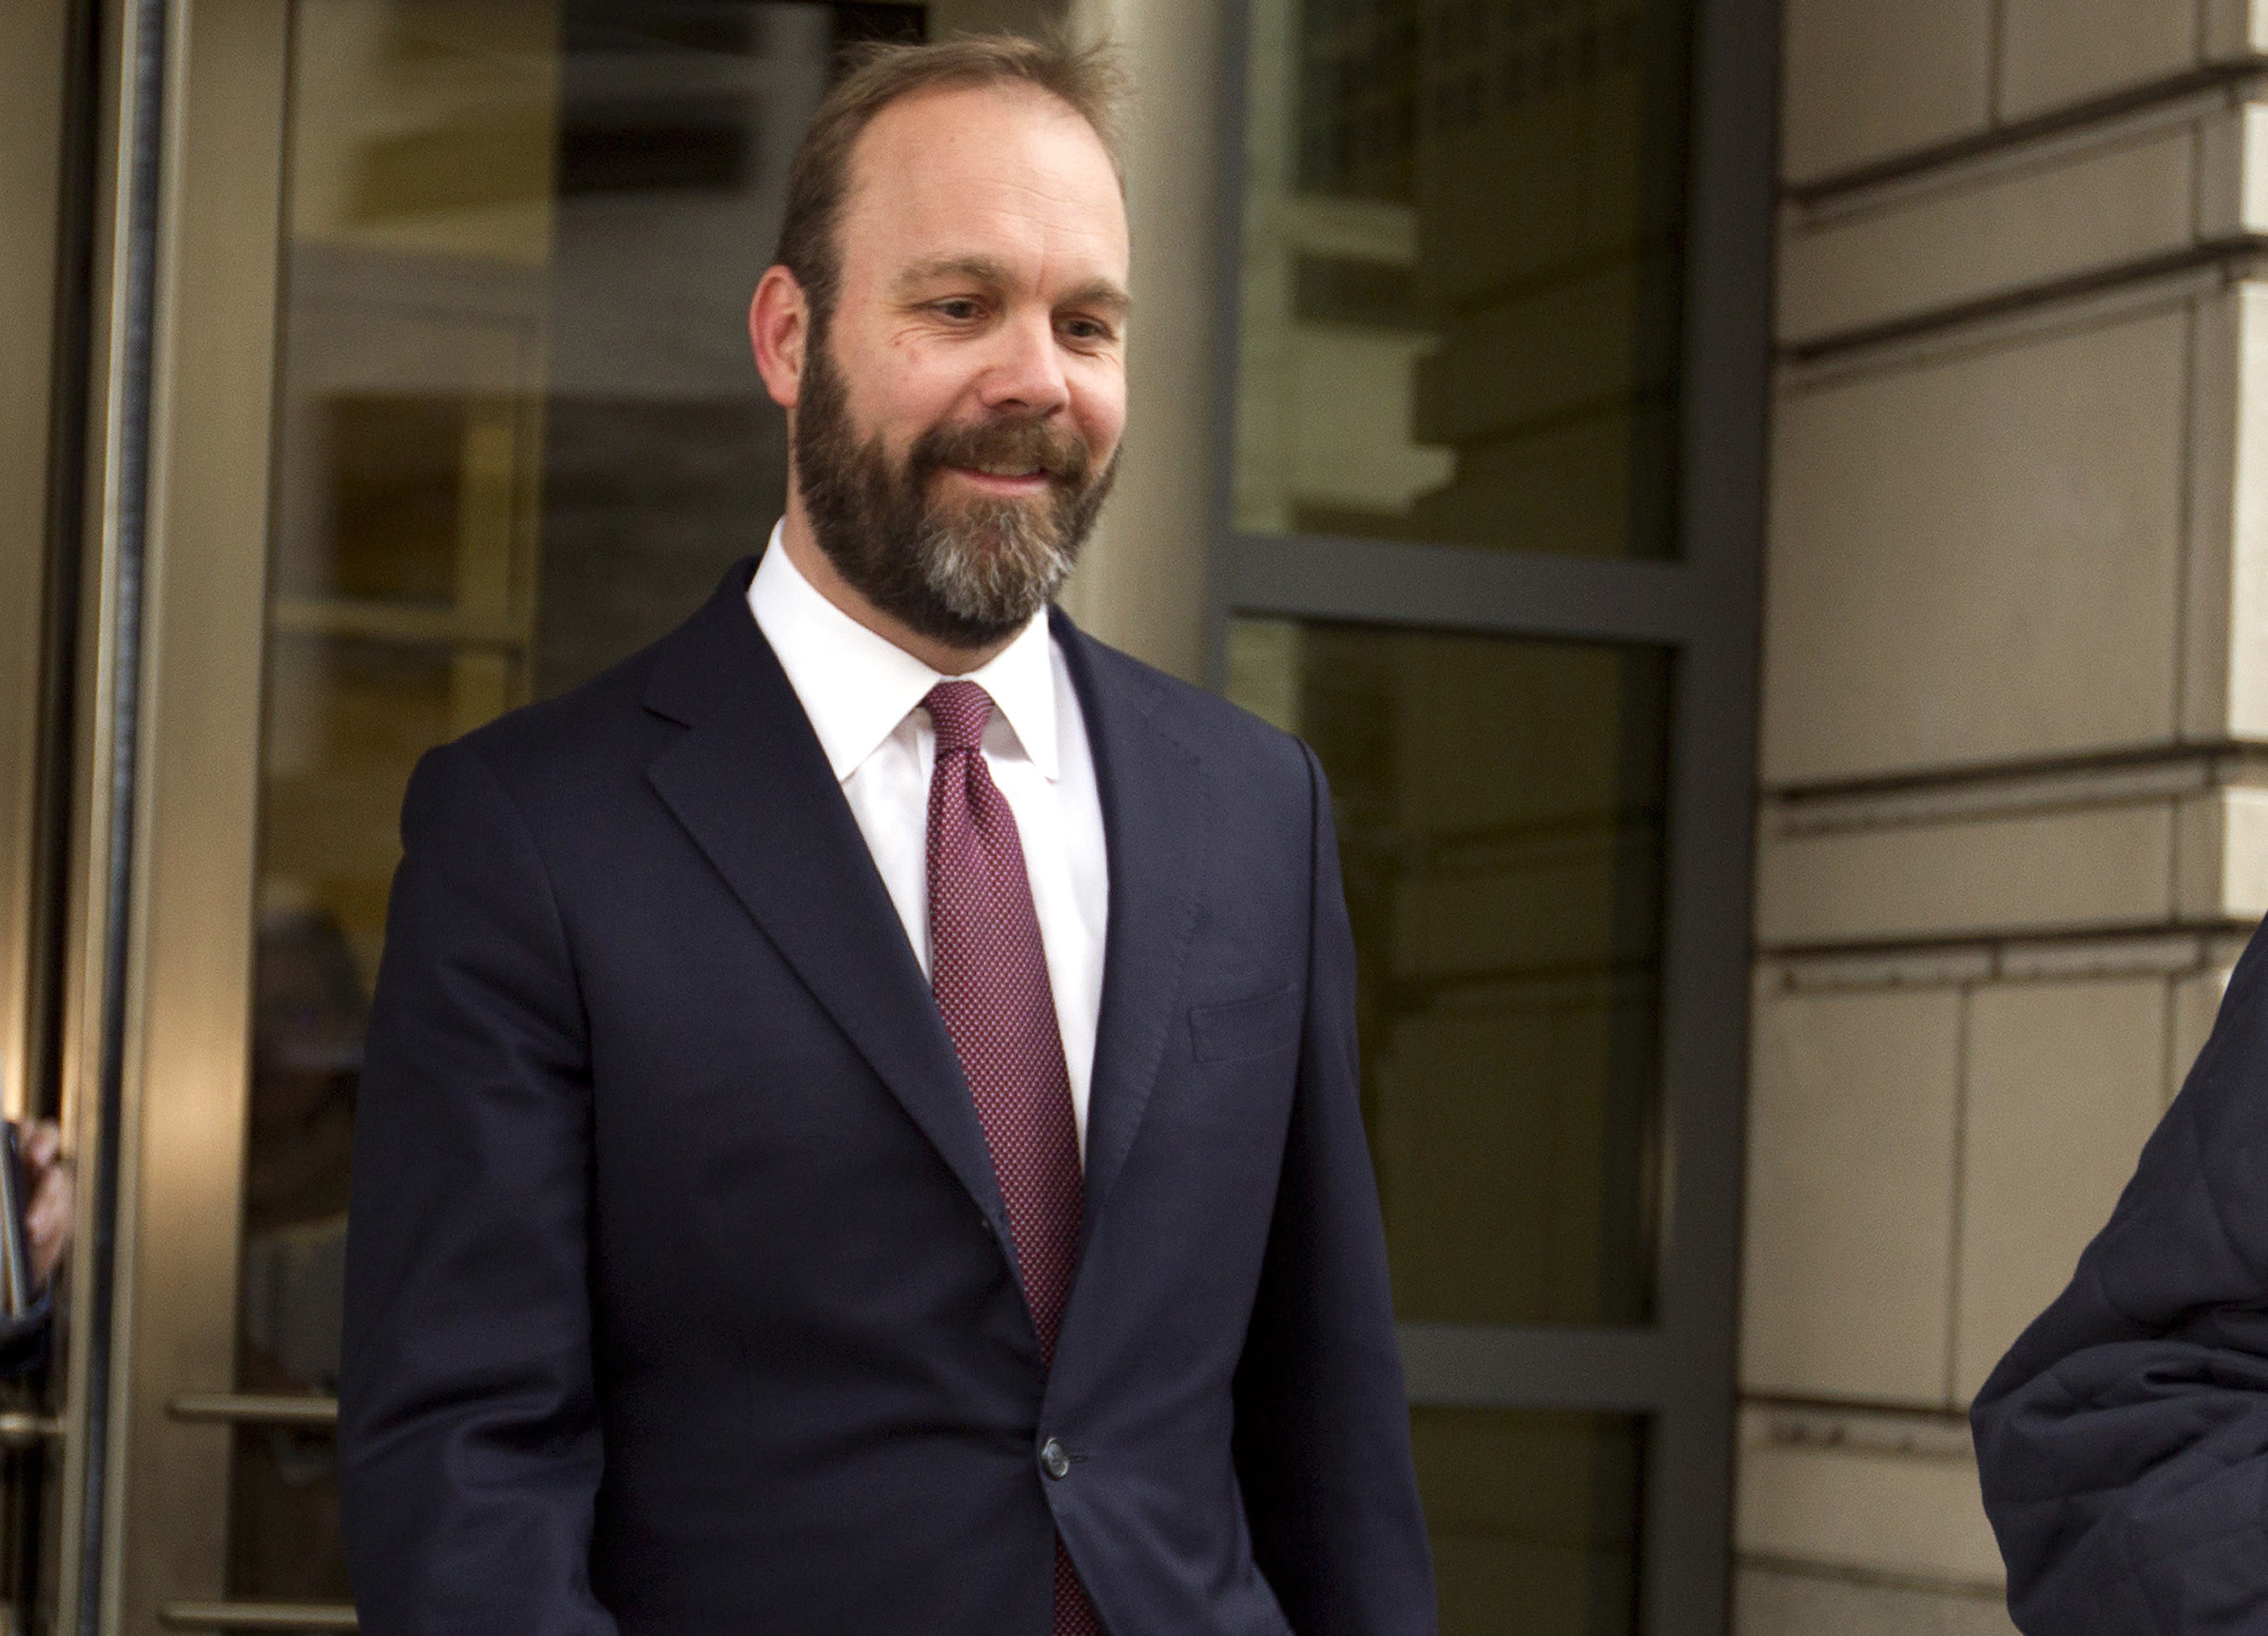 Trump ex-campaign aide Gates to be sentenced after helping prosecutors